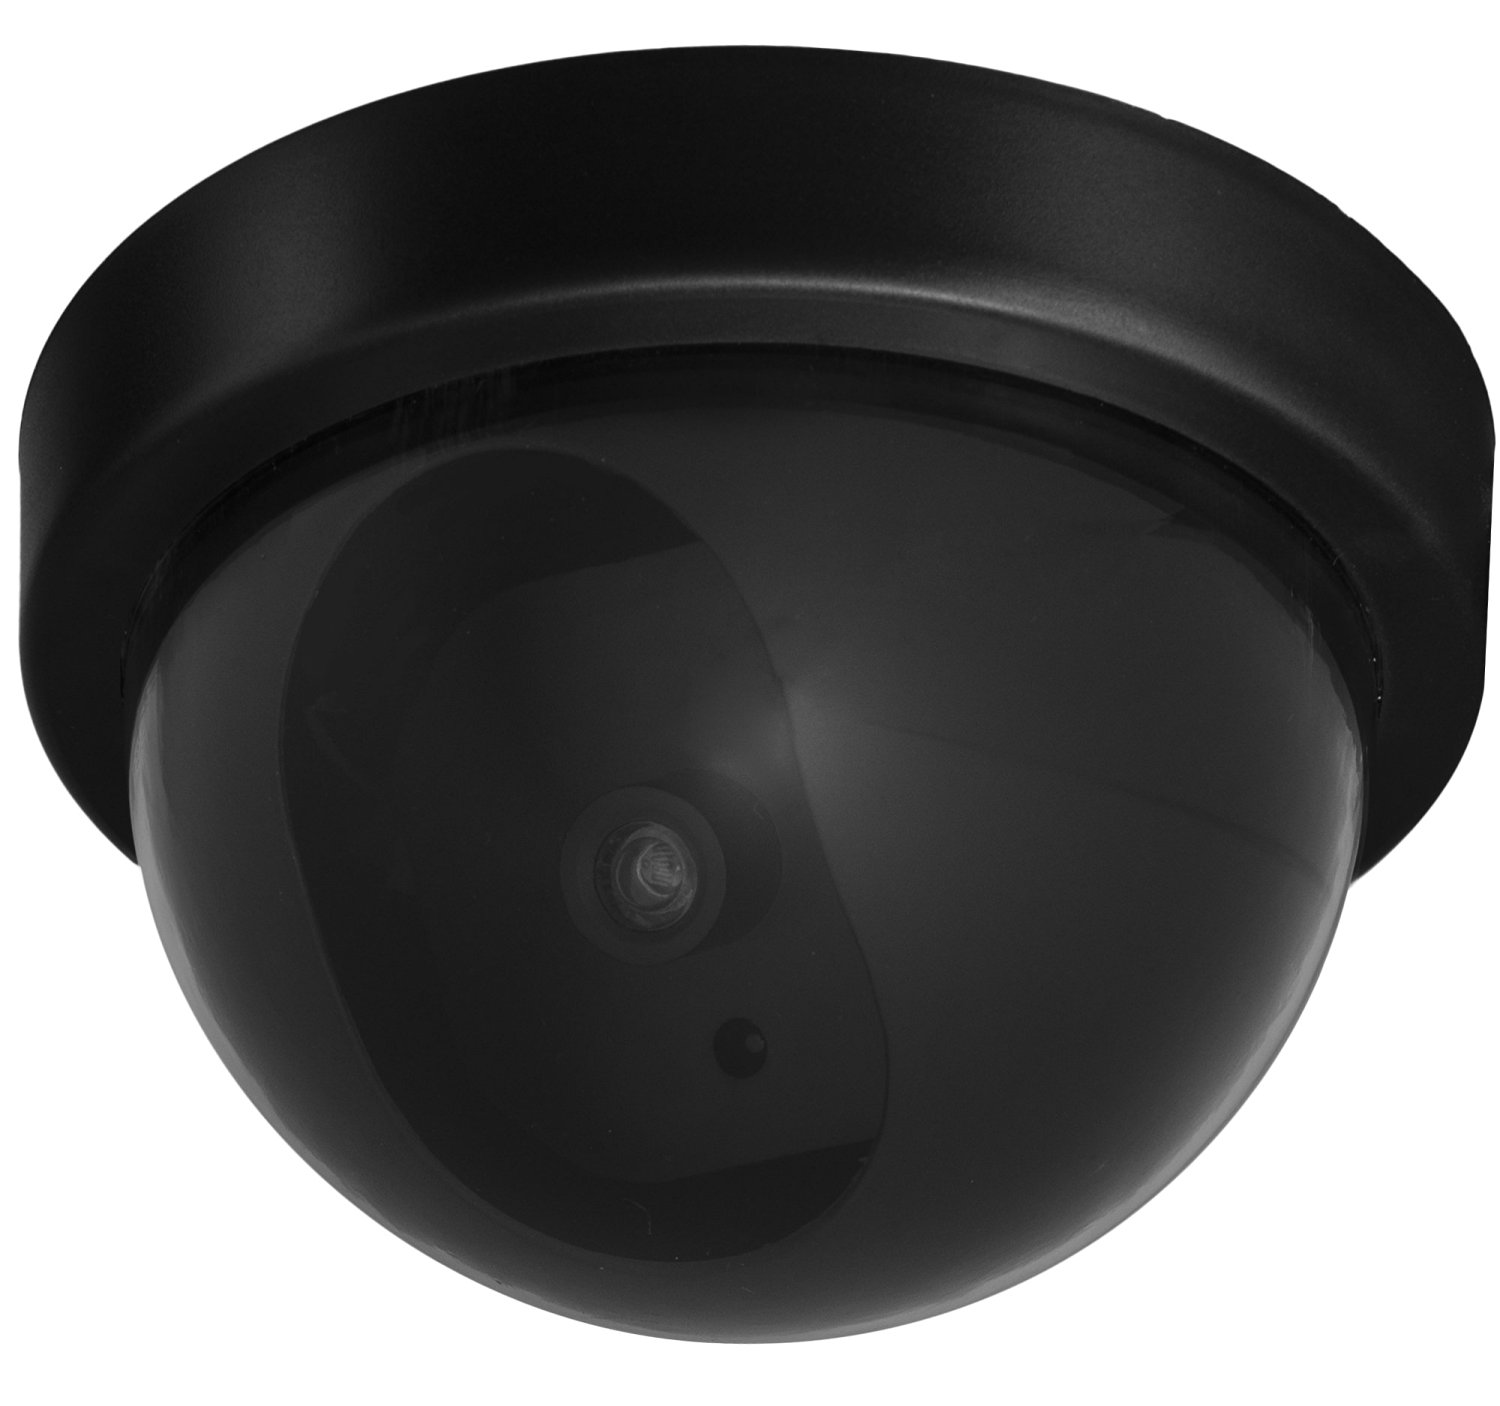 Yubi Power Fake Outdoor Dome Surveillance Dummy Security Cameras